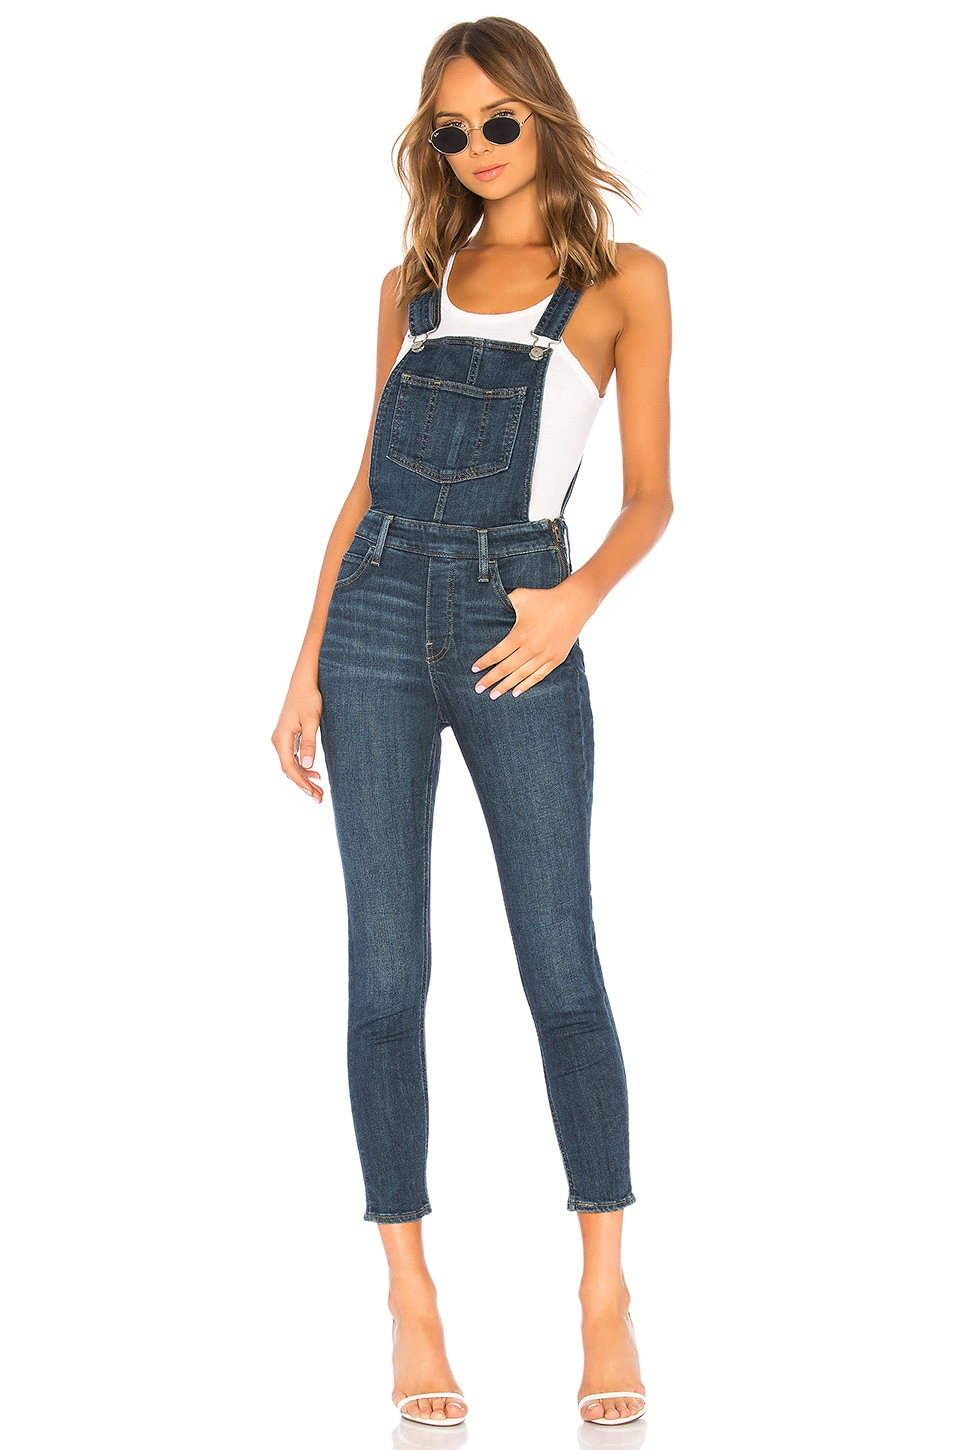 Skinny Denim Overalls In Over And Out in Over & Out